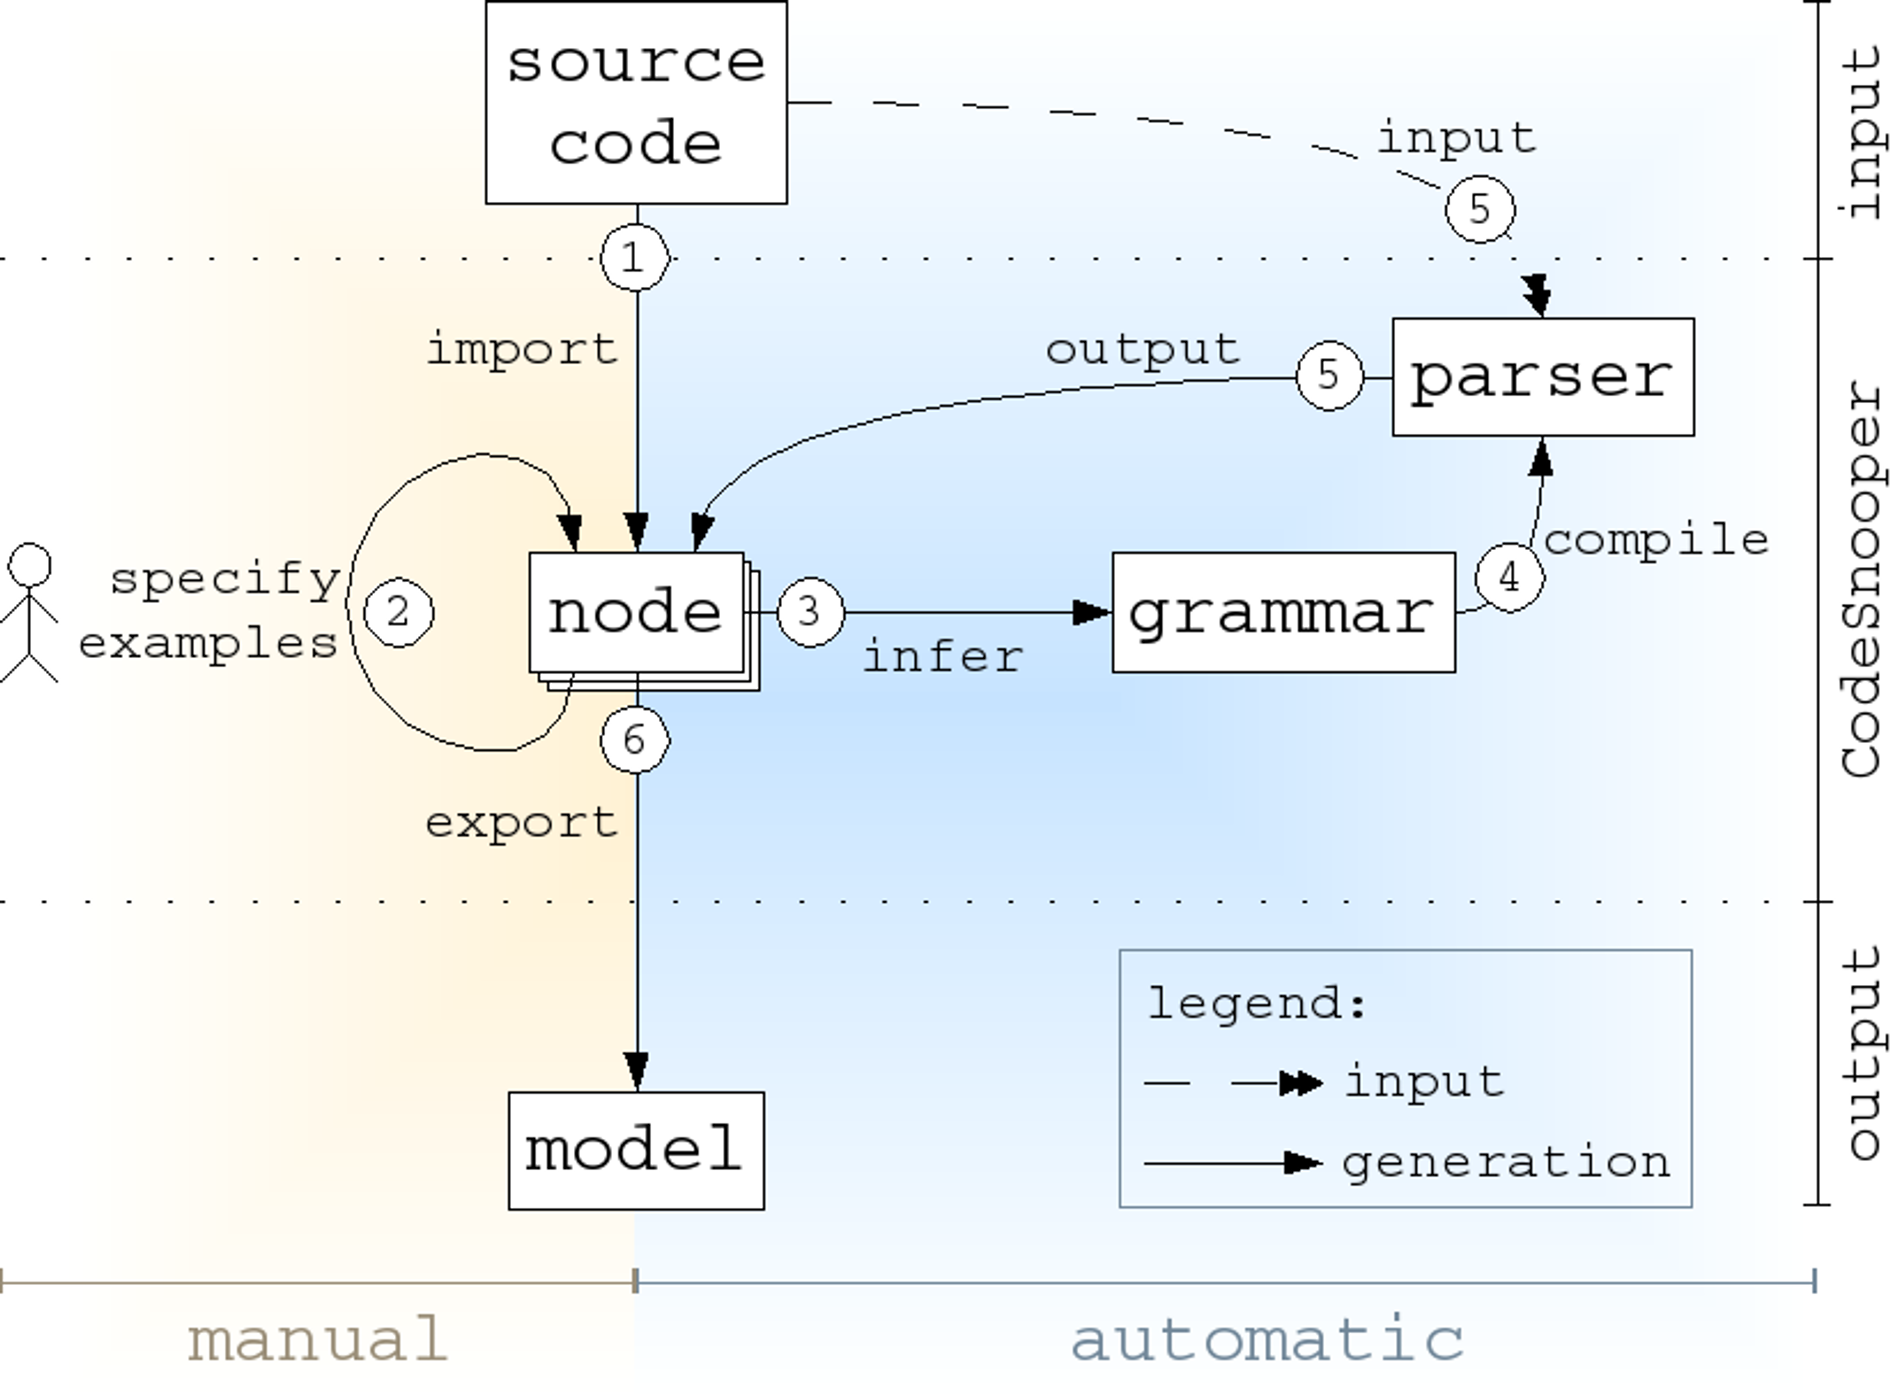 12 CHAPTER 3. PARSING BY EXAMPLE Figure 3.1: The way from source code to a model - step by step.